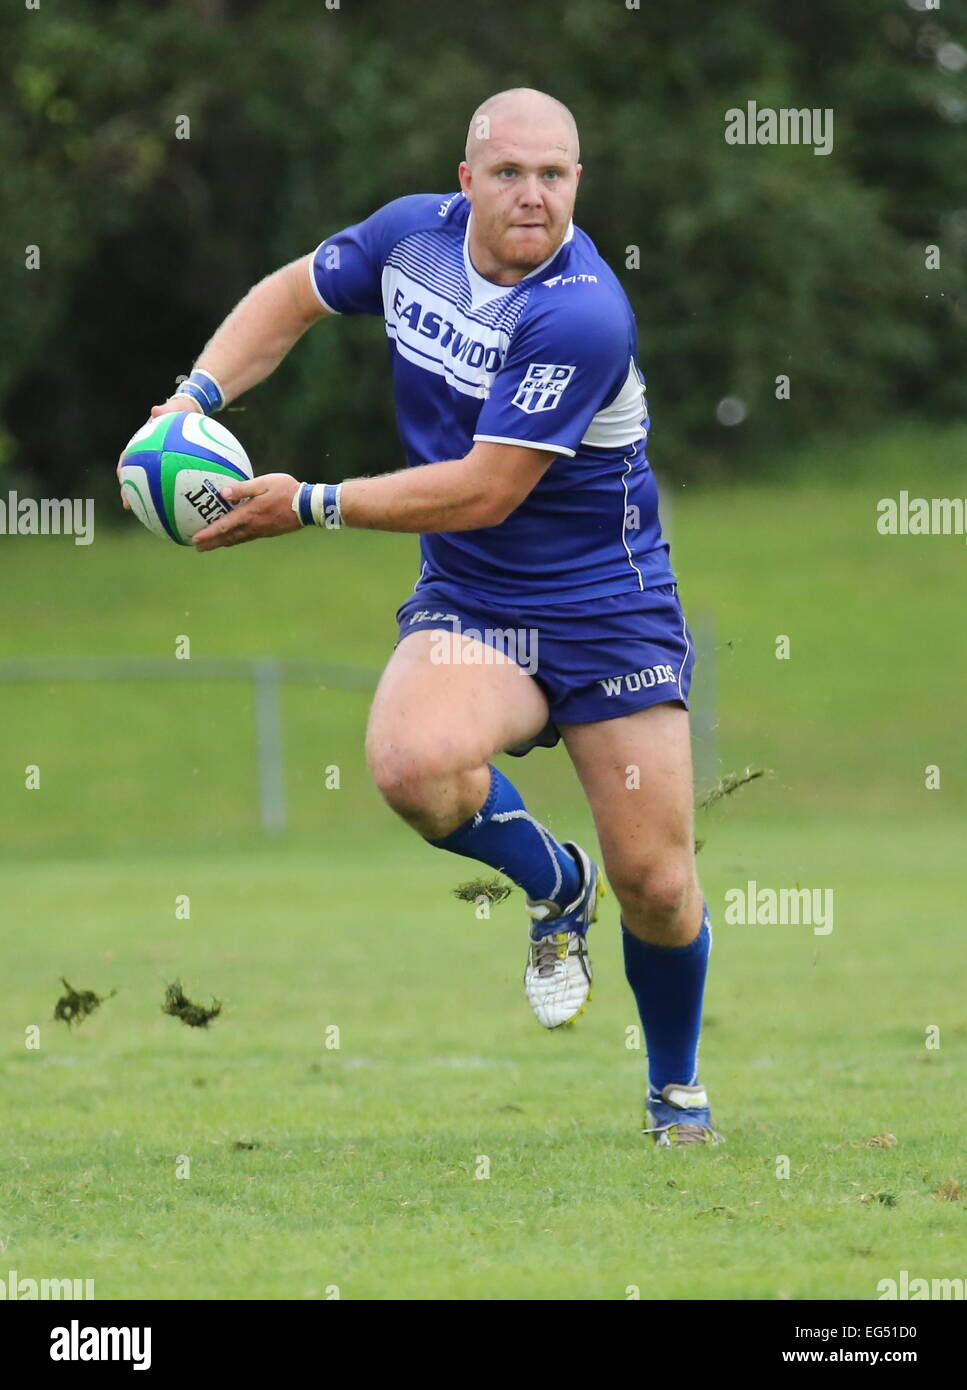 Sydney based Eastwood Rugby Club's First Grade Centre Blake Sutton on a charge. - Stock Image